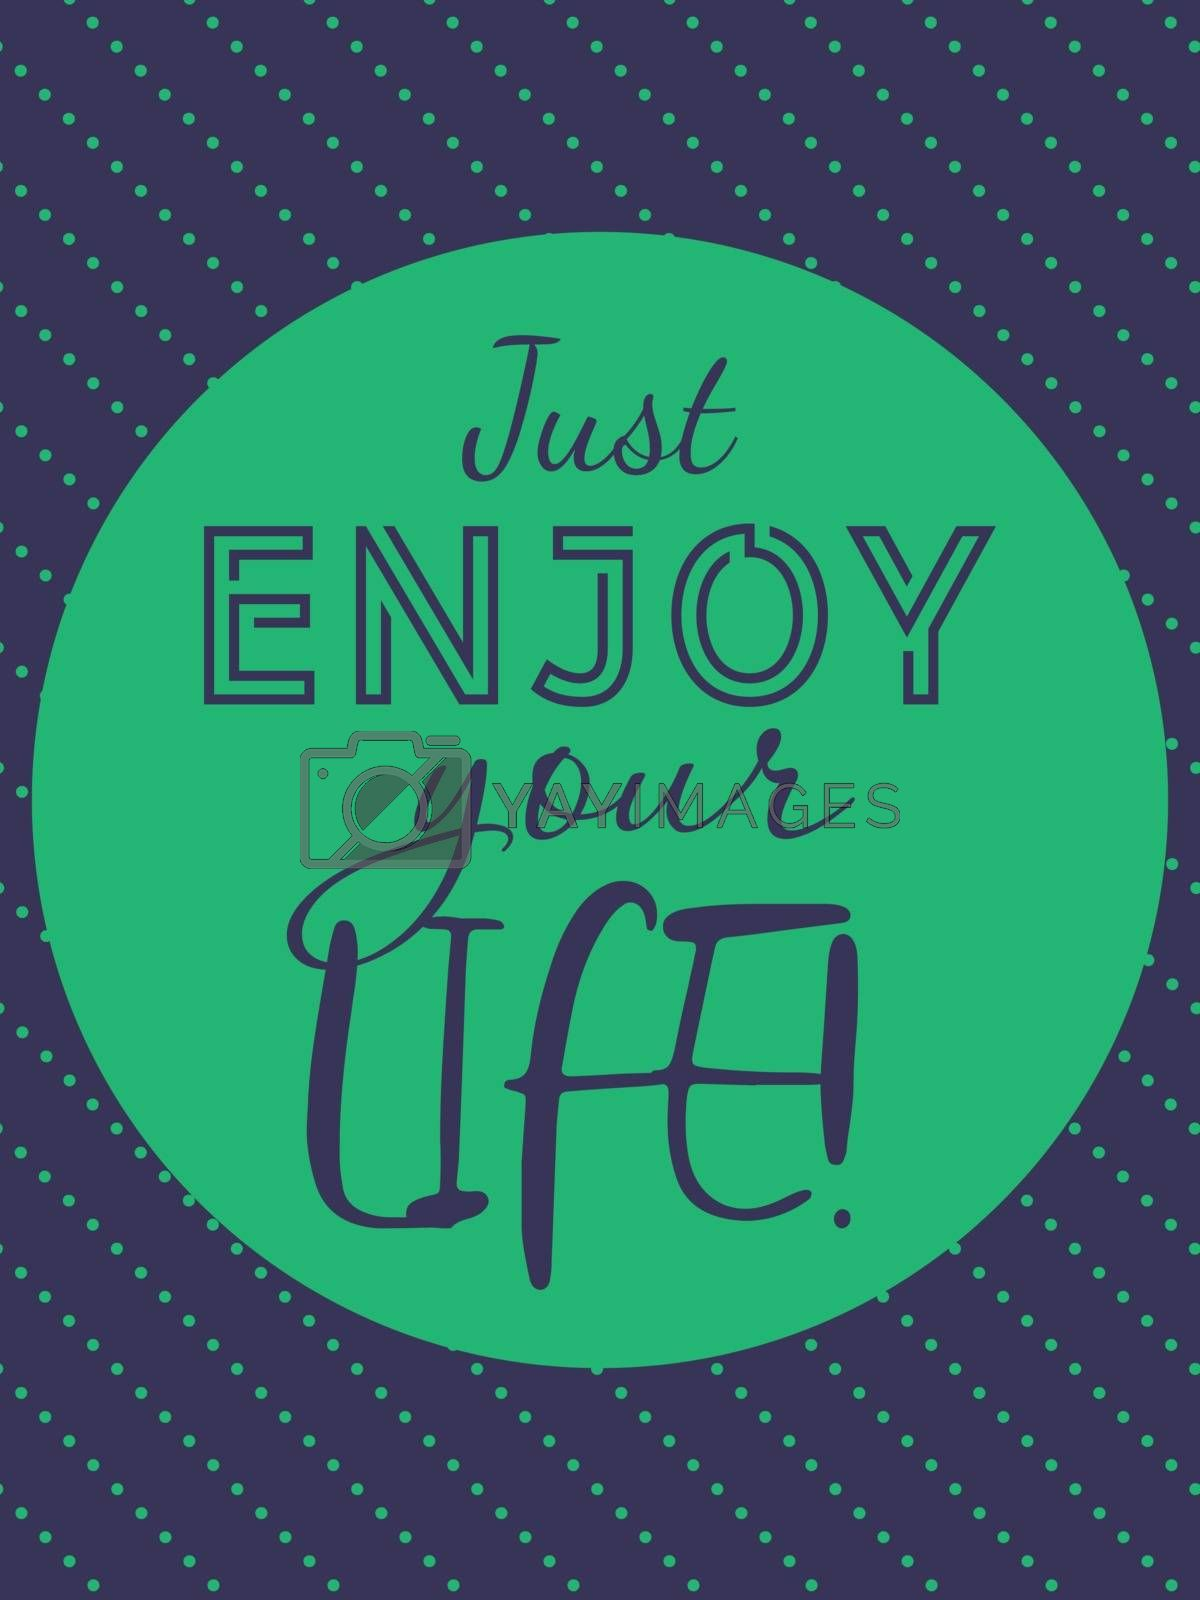 Inspirational and motivational lettering 'just enjoy your life' in mint green circle on violet background